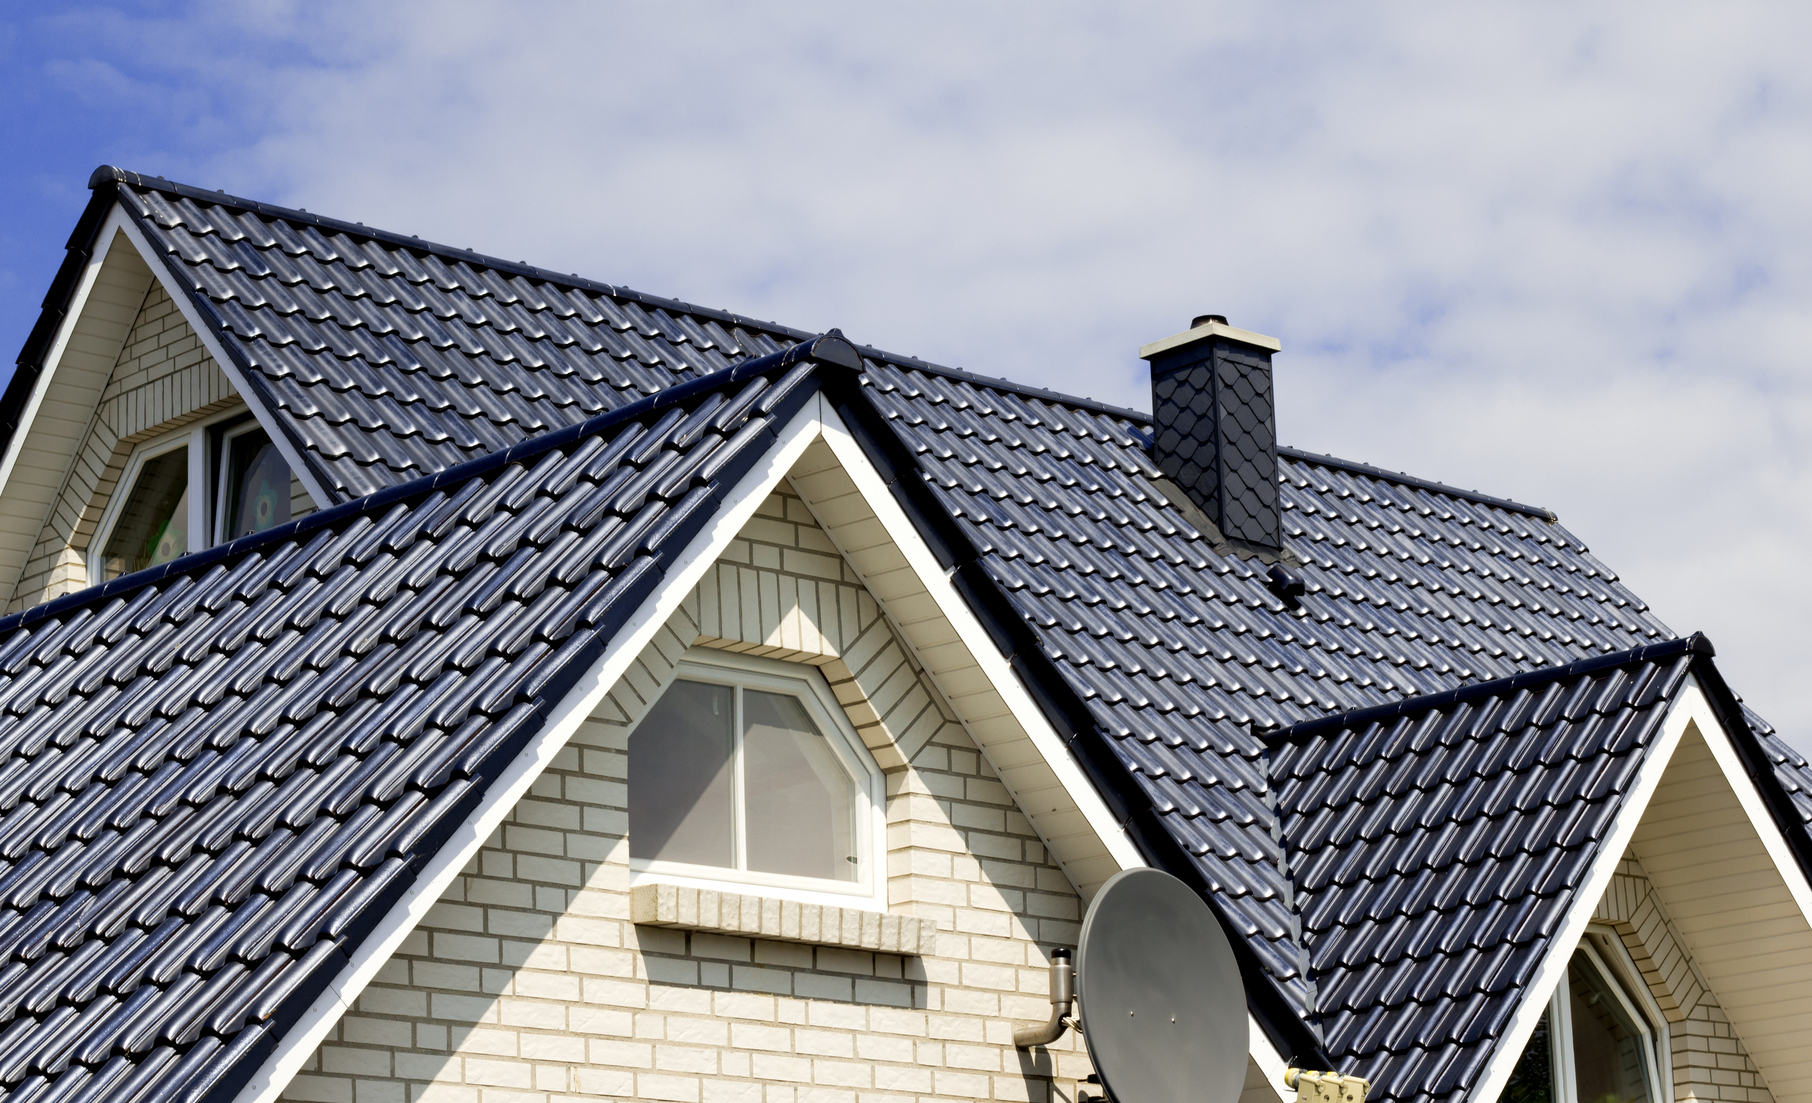 Understanding the importance of attic Insulation Company for roofing